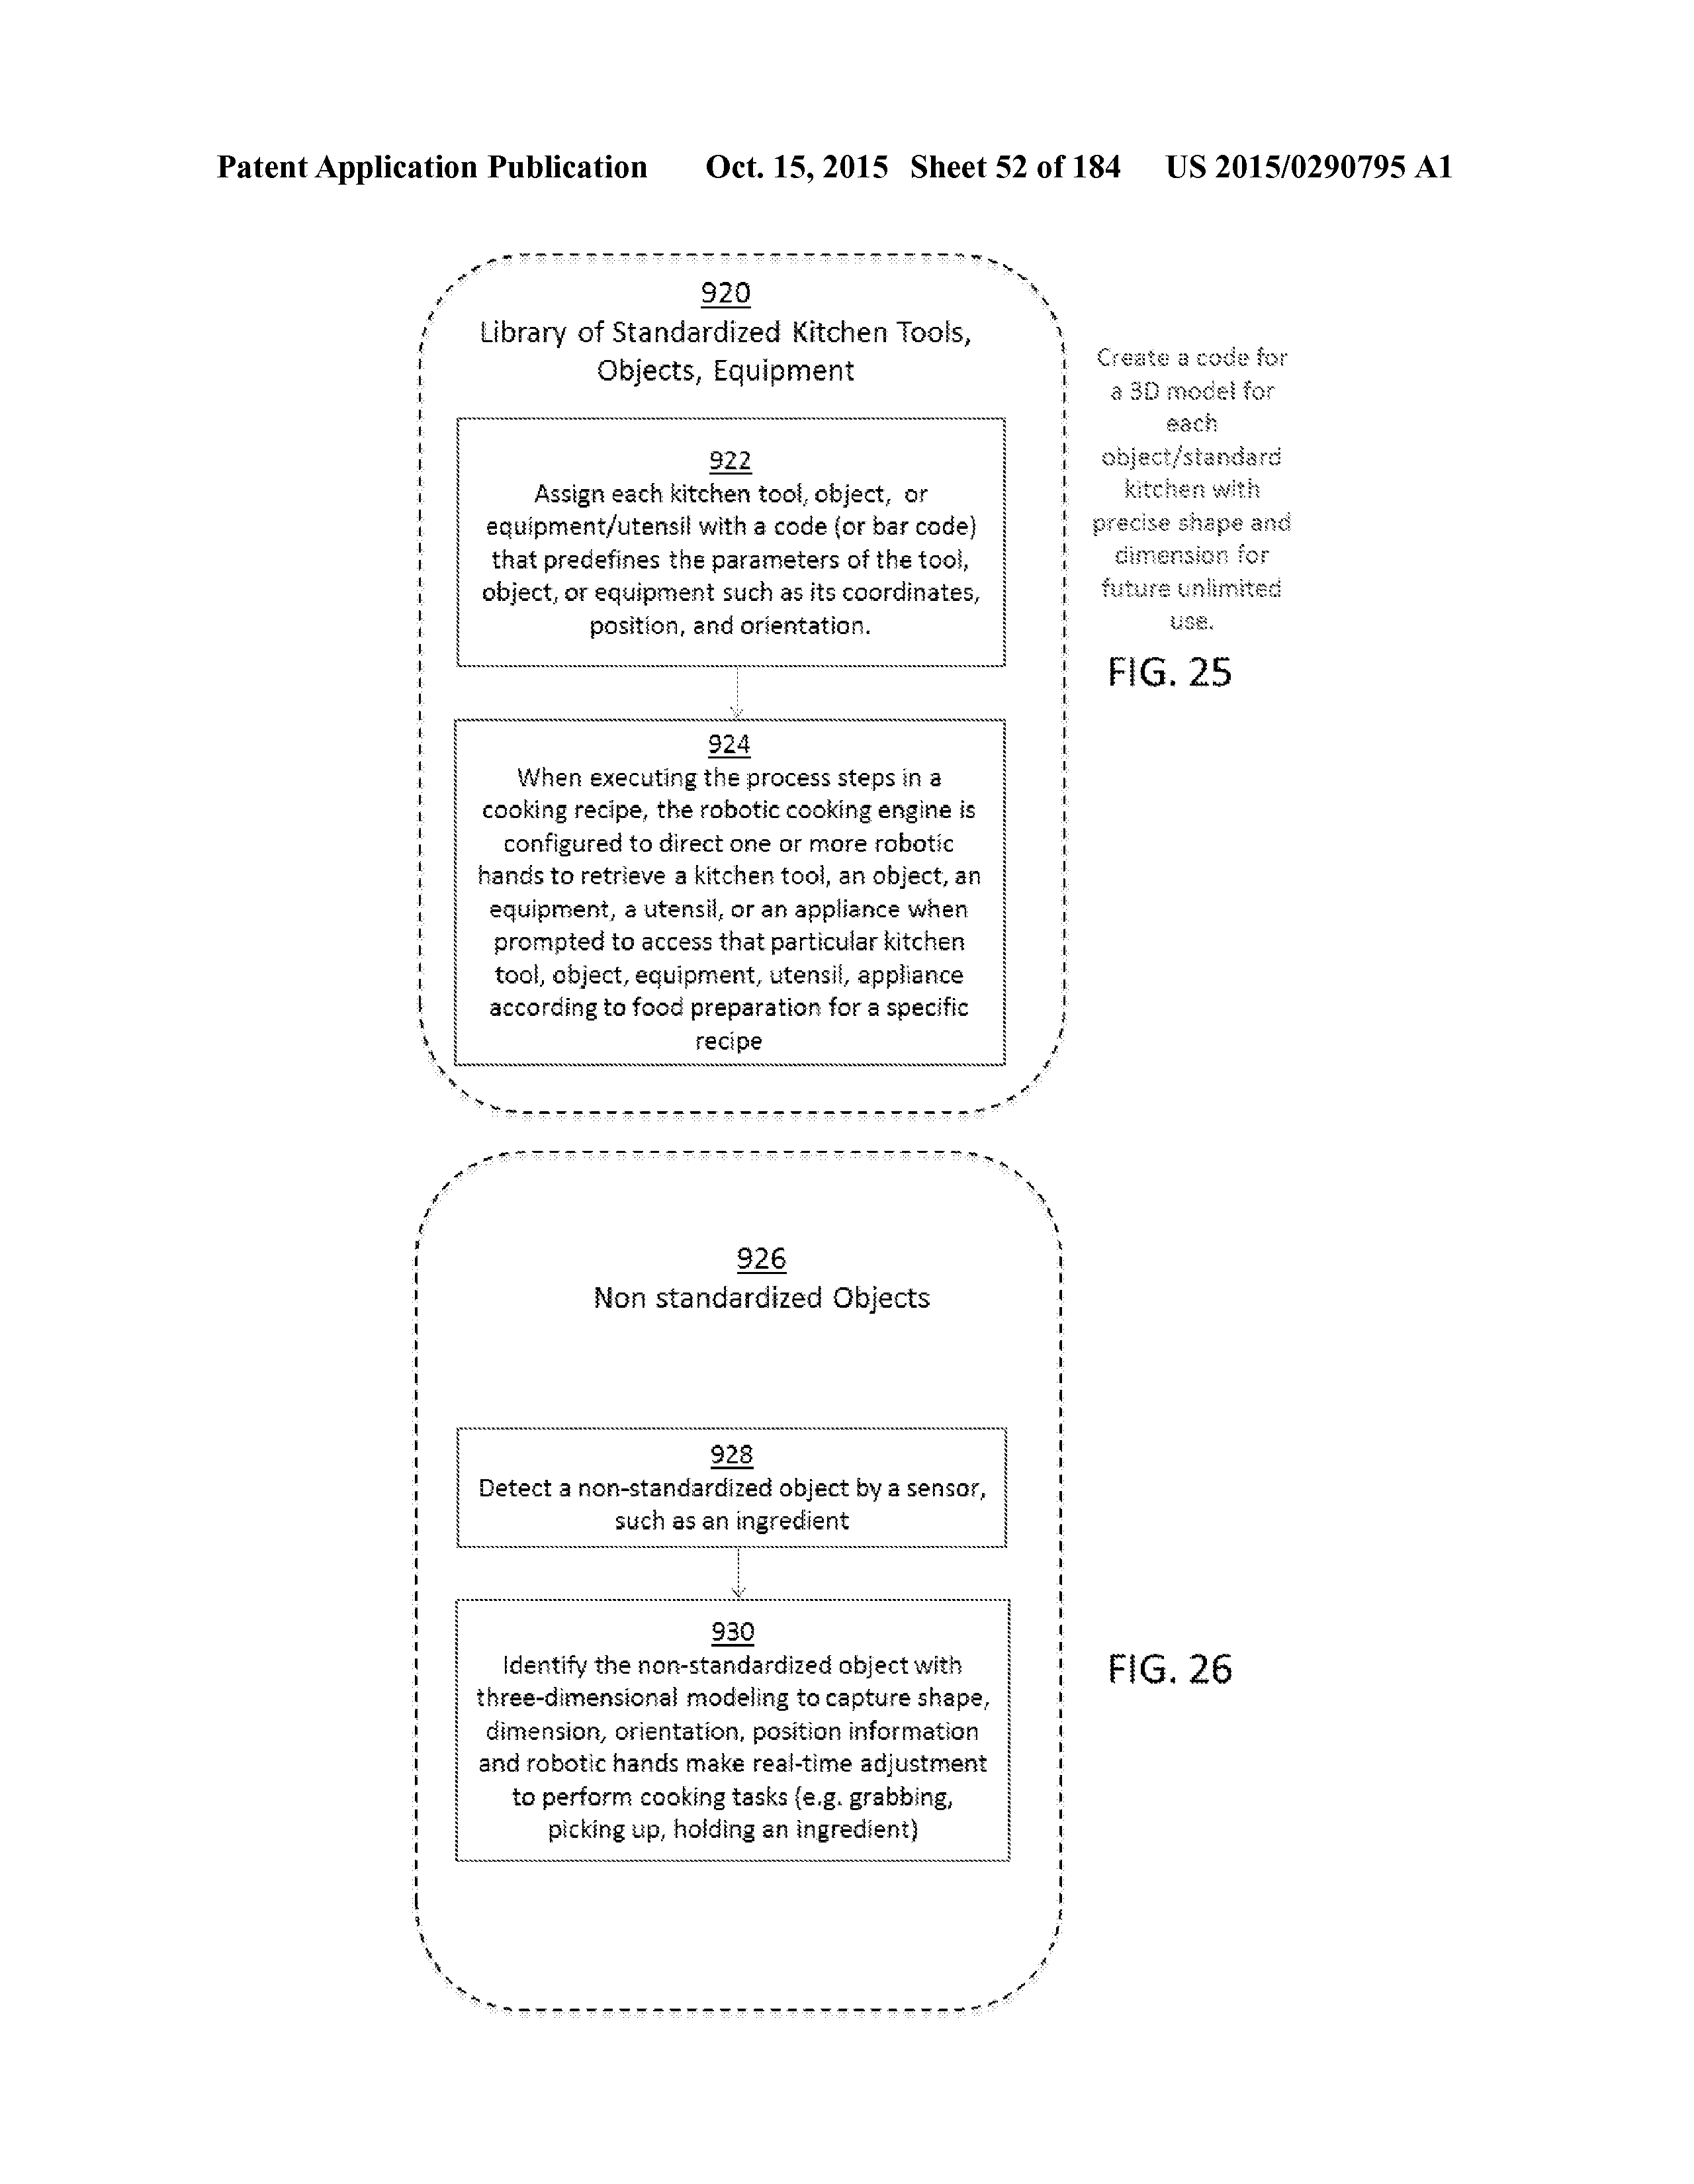 US 2015/0290795 A1 - Methods And Systems For Food